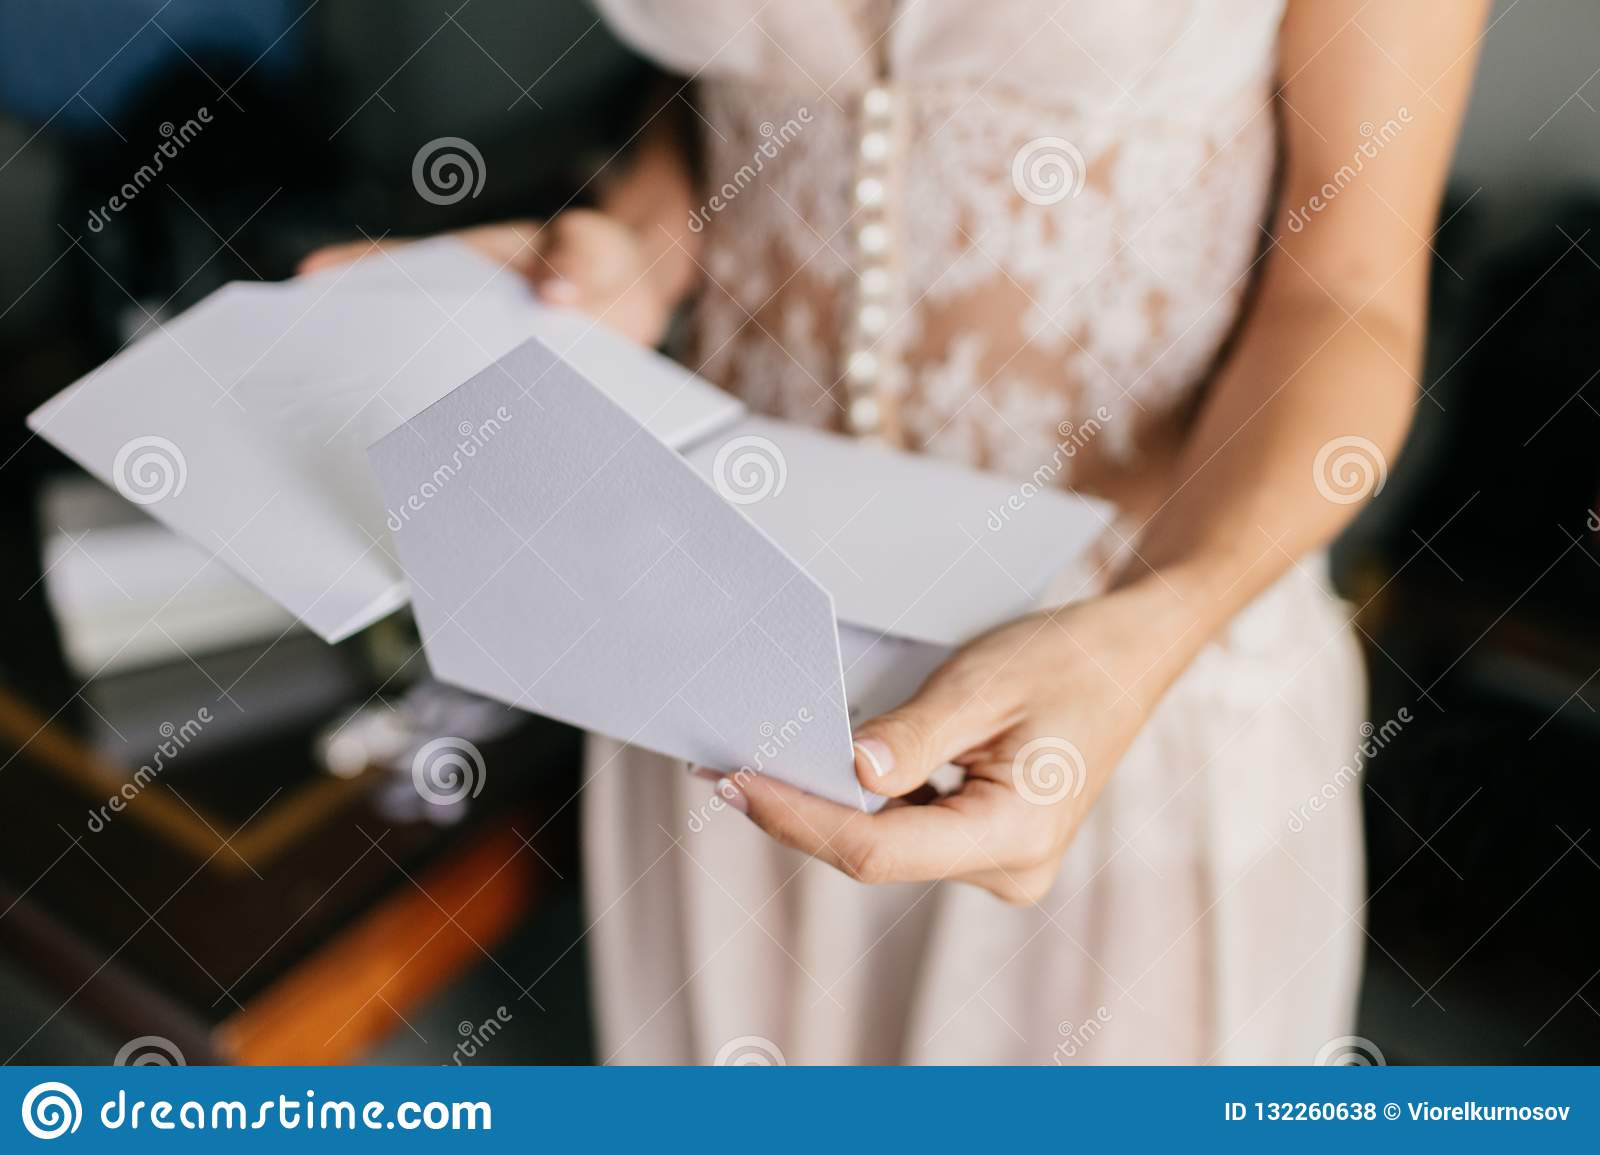 Female Bride In White Dress Holds White Letter Or Envelope